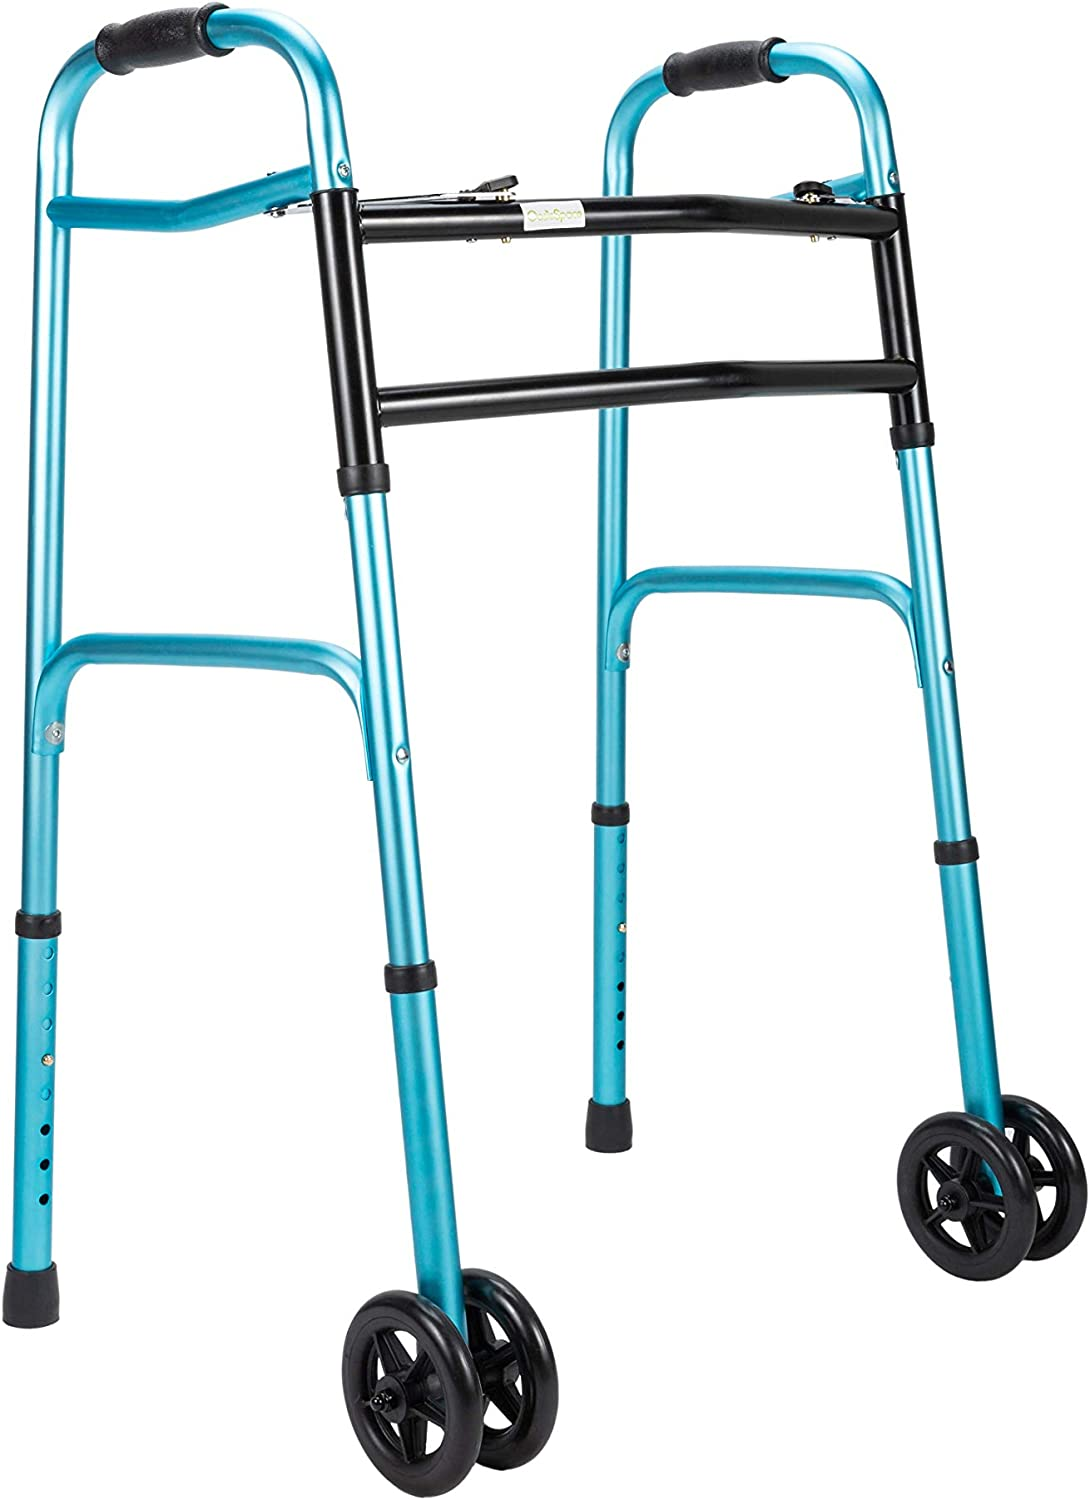 OasisSpace Heavy Duty Folding Walker, Bariatric Walker with 5 Inches Wheels for Seniors Wide Walker Supports up to 500 lbs [Walker Accessories ...